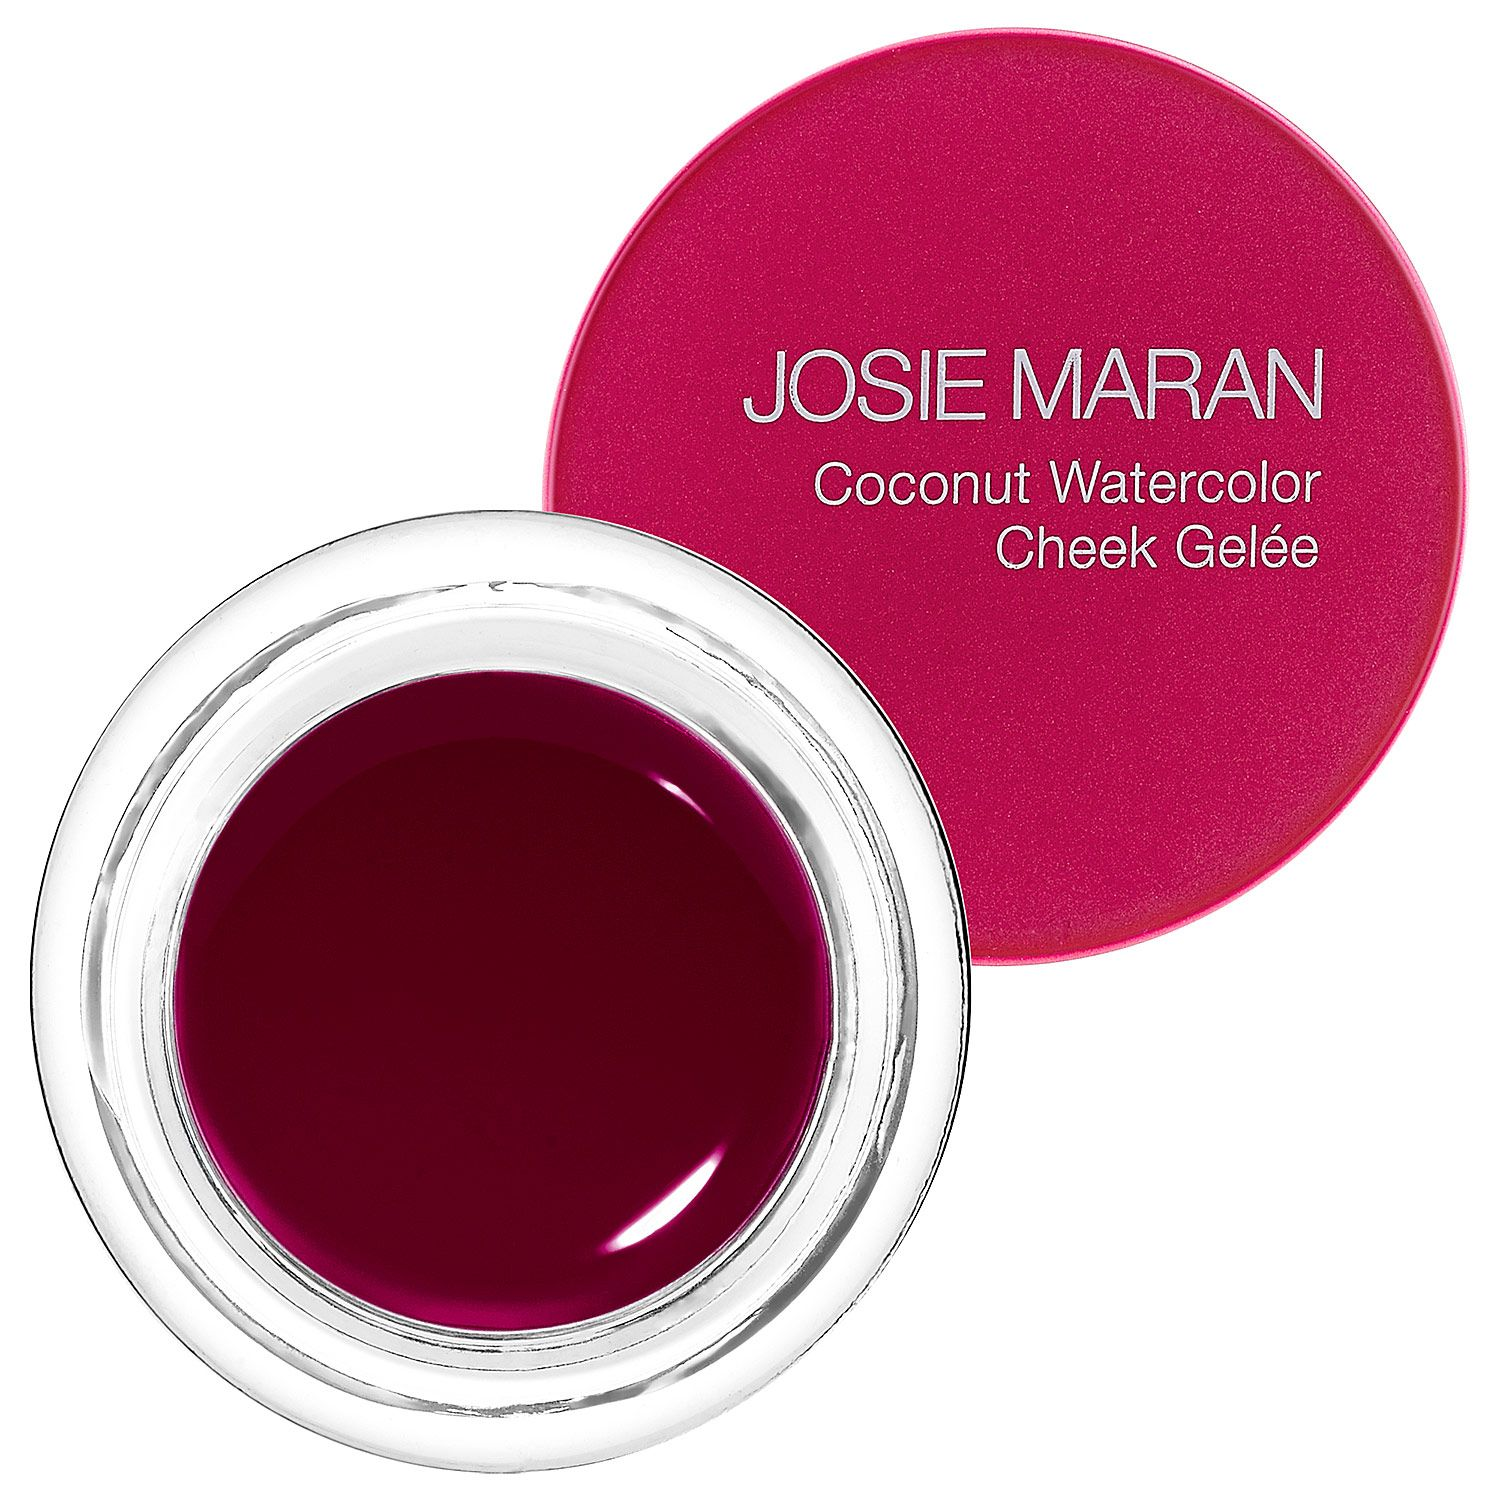 Josie Maran Coconut Watercolor Cheek Gelee Blush Sephora